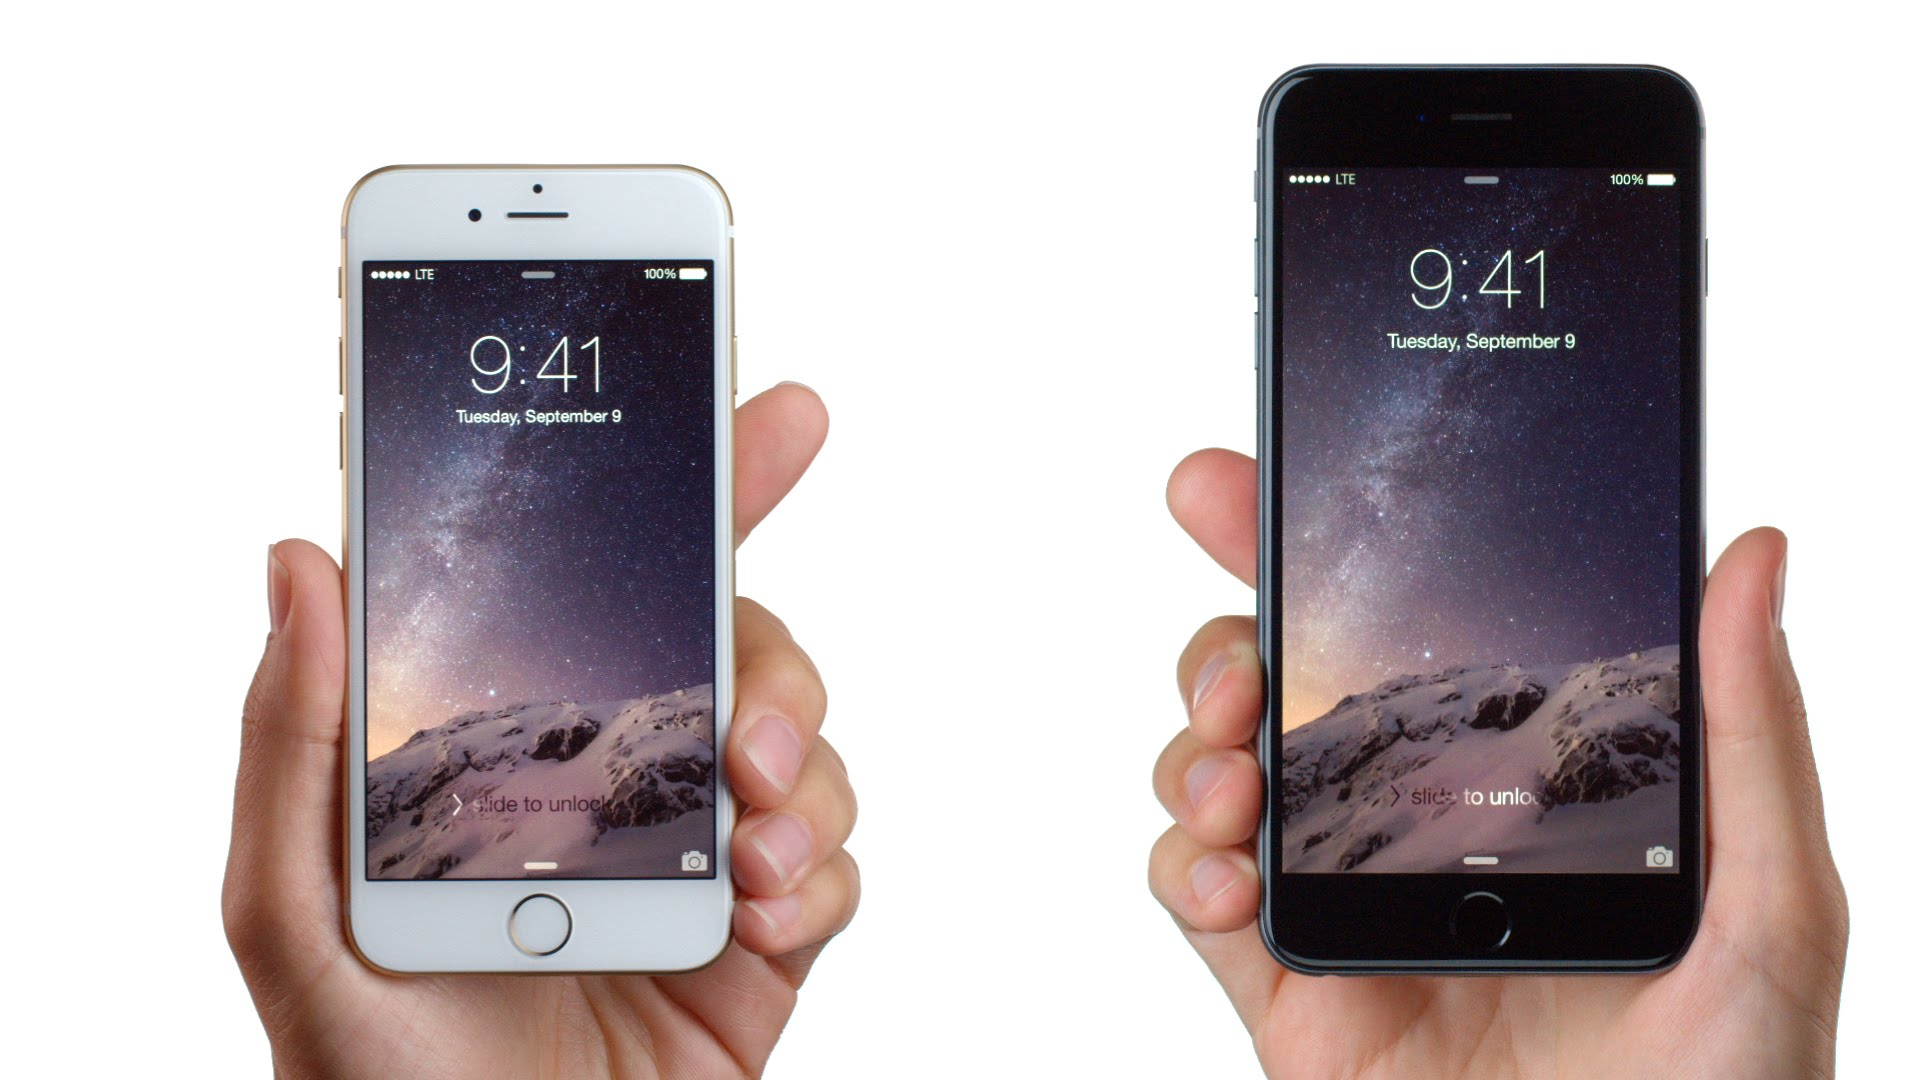 3 Reasons the iPhone 6 Will Be My Last iPhone